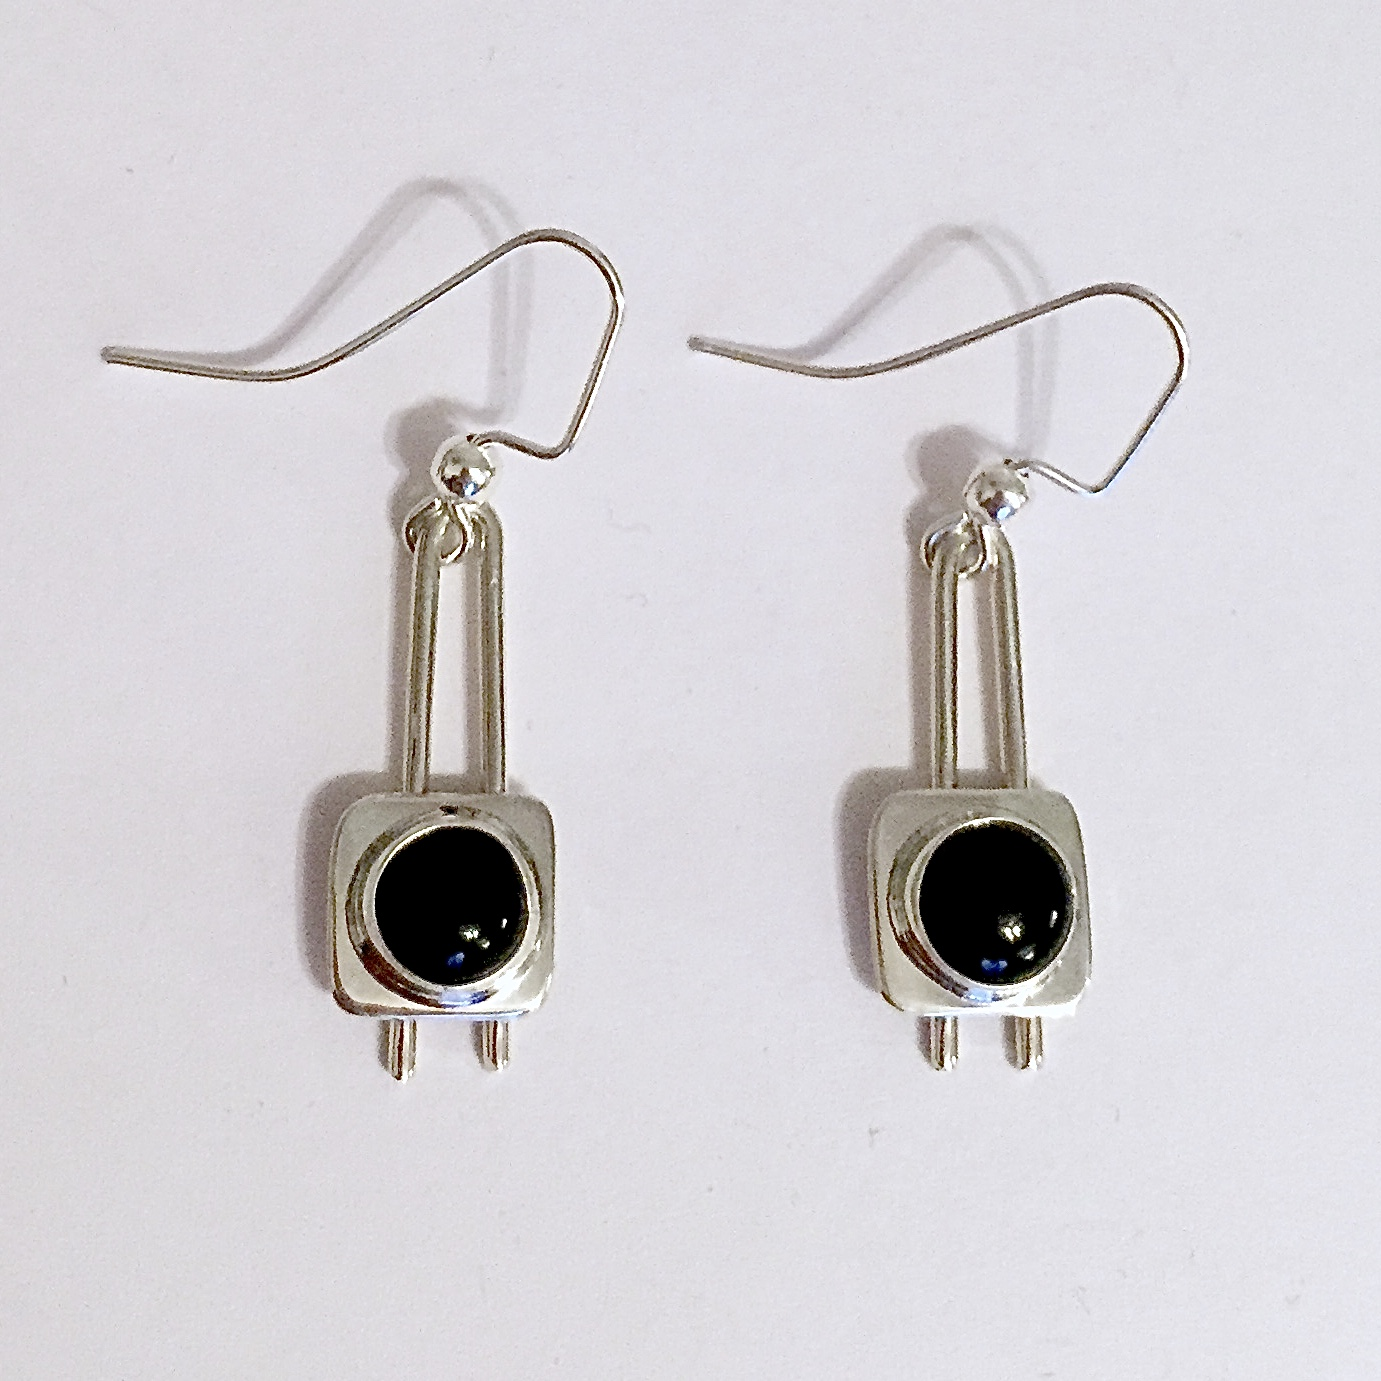 tomoko products black onyx earrings image jewellery